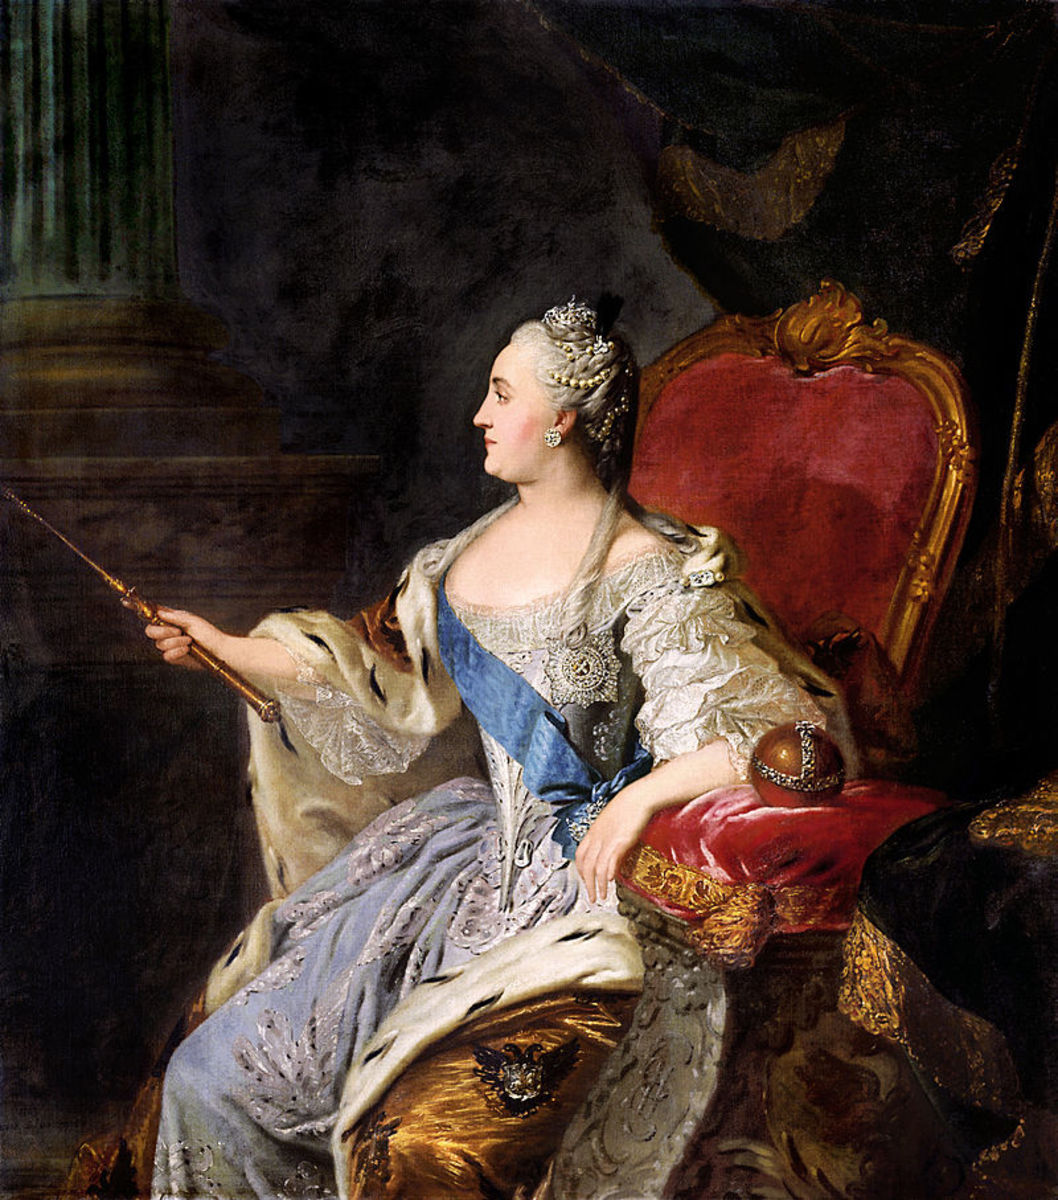 Catherine the Great ruled from 1762 to 1796 oversaw the Empire's greatest expansion period and played a key role in the Russian Enlightenment Movement.